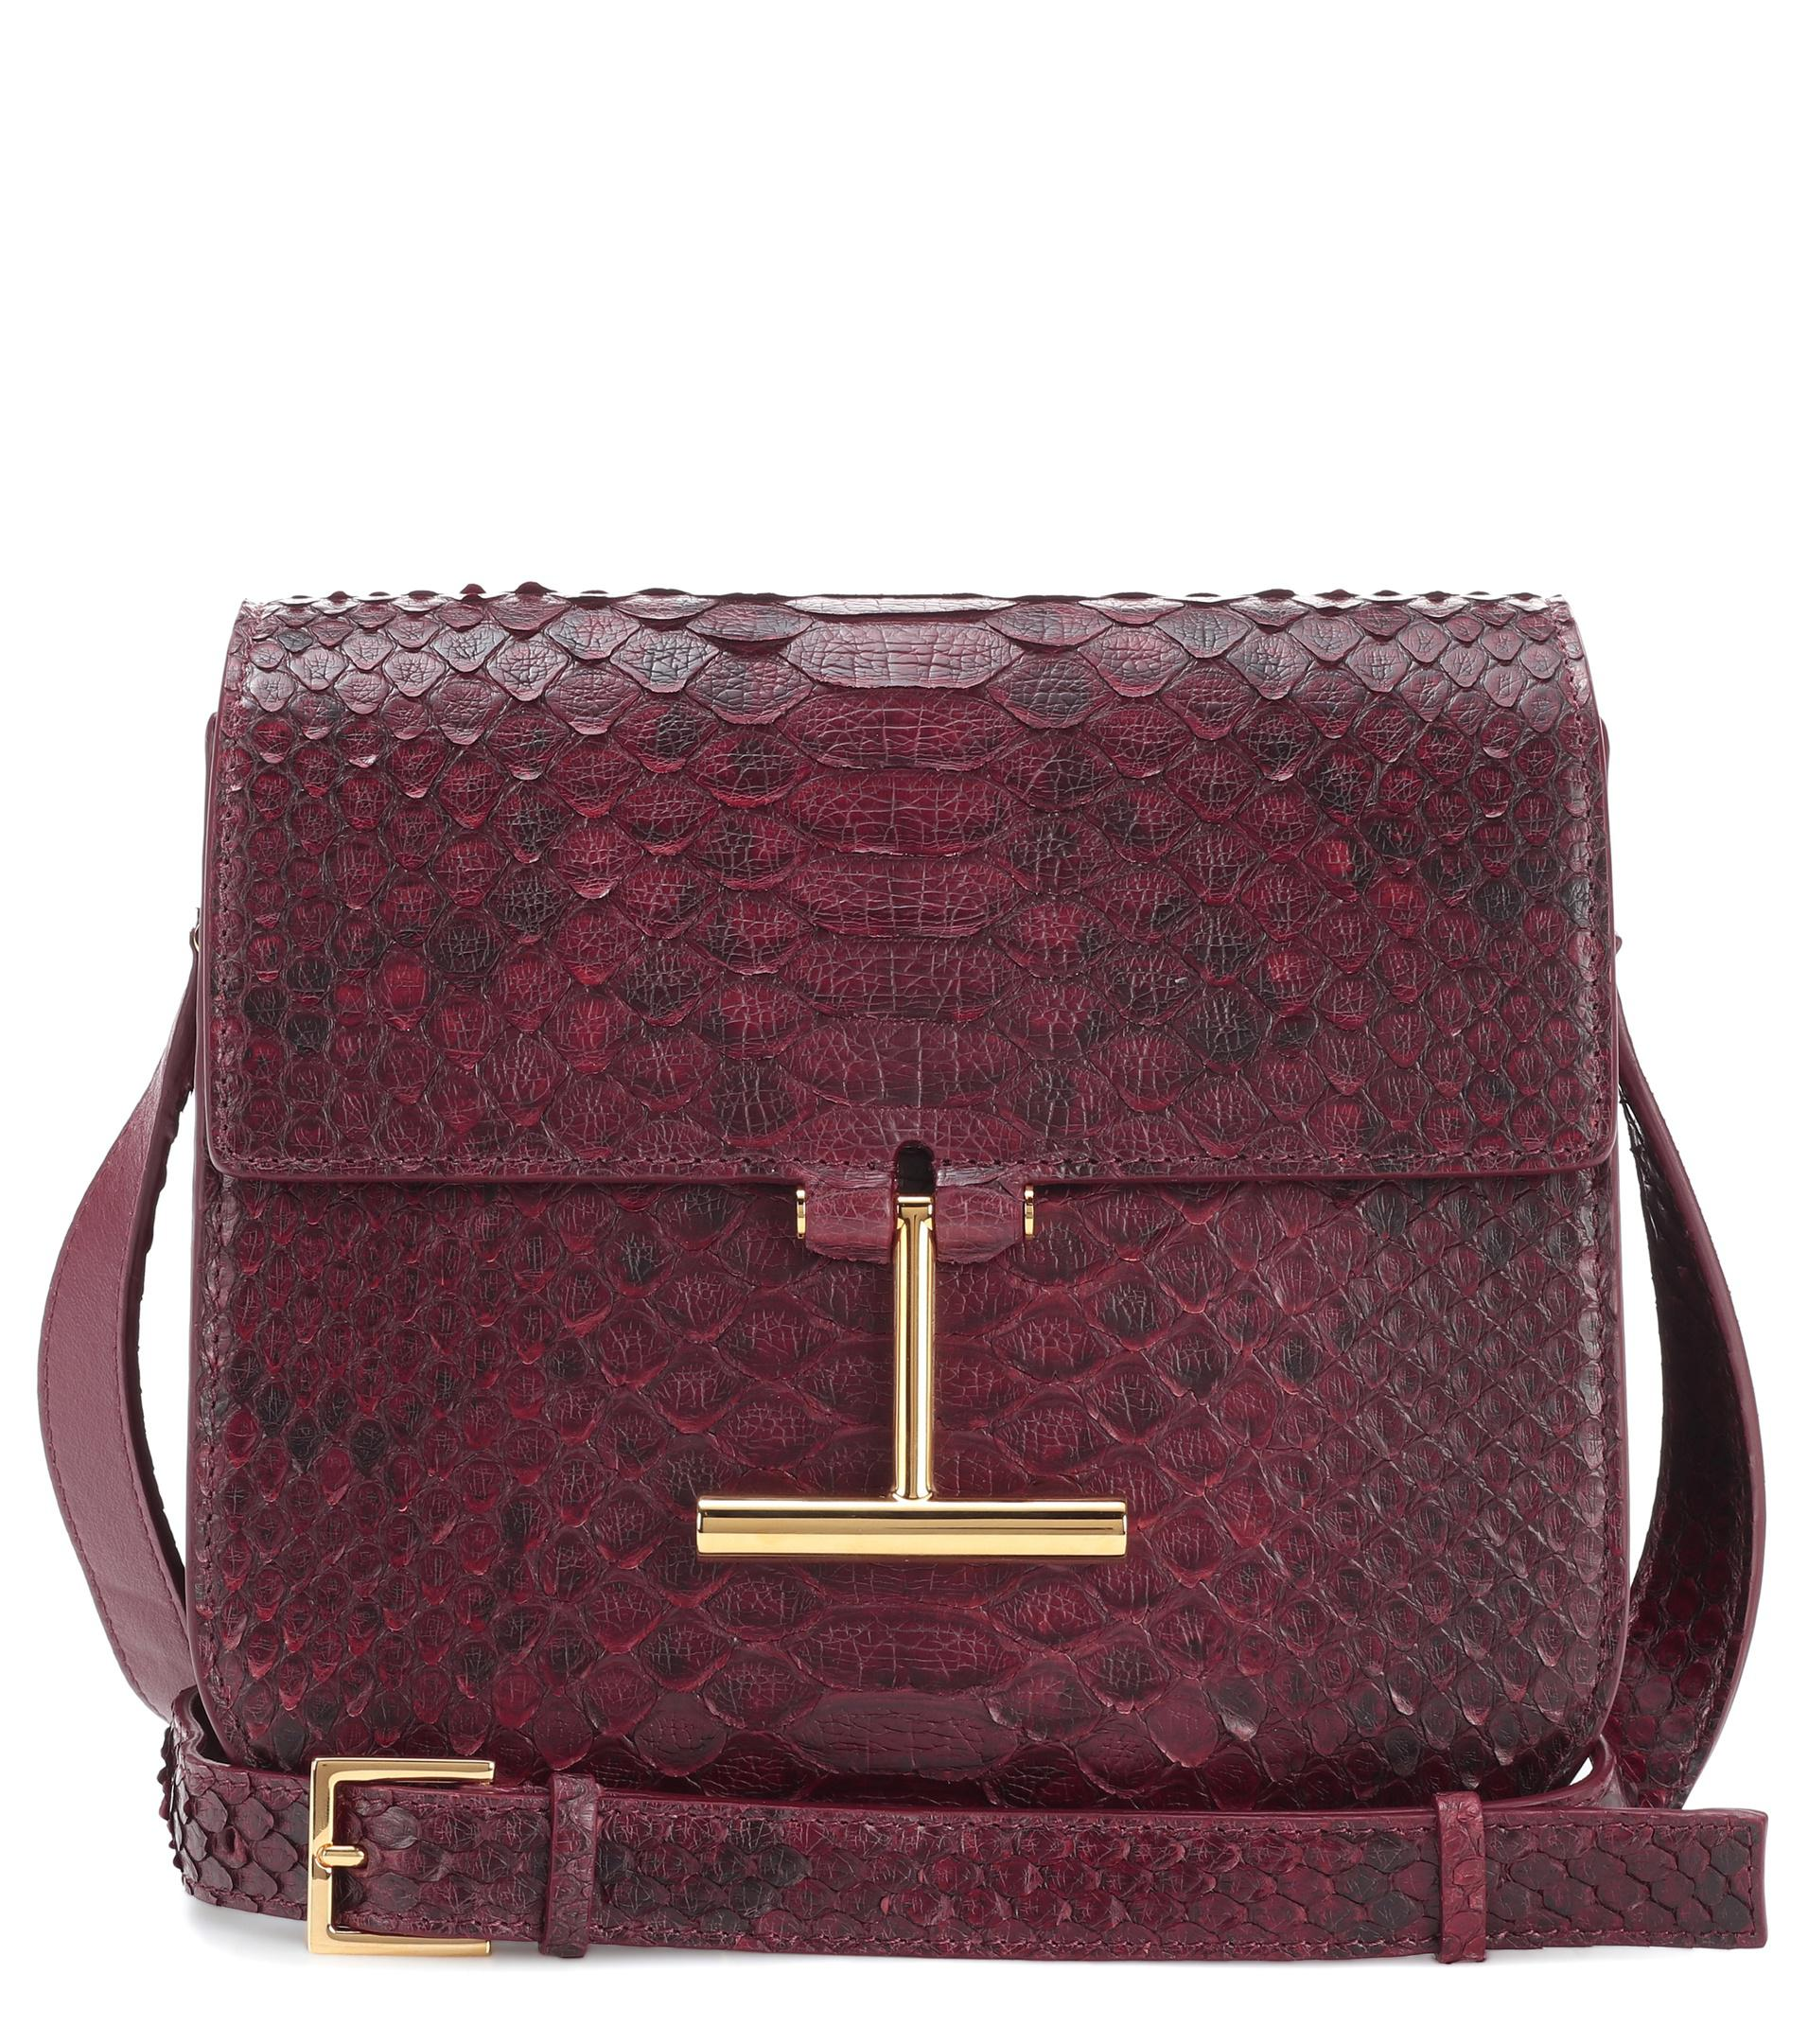 04b8778003a6 Tom Ford Snakeskin Shoulder Bag in Red - Lyst